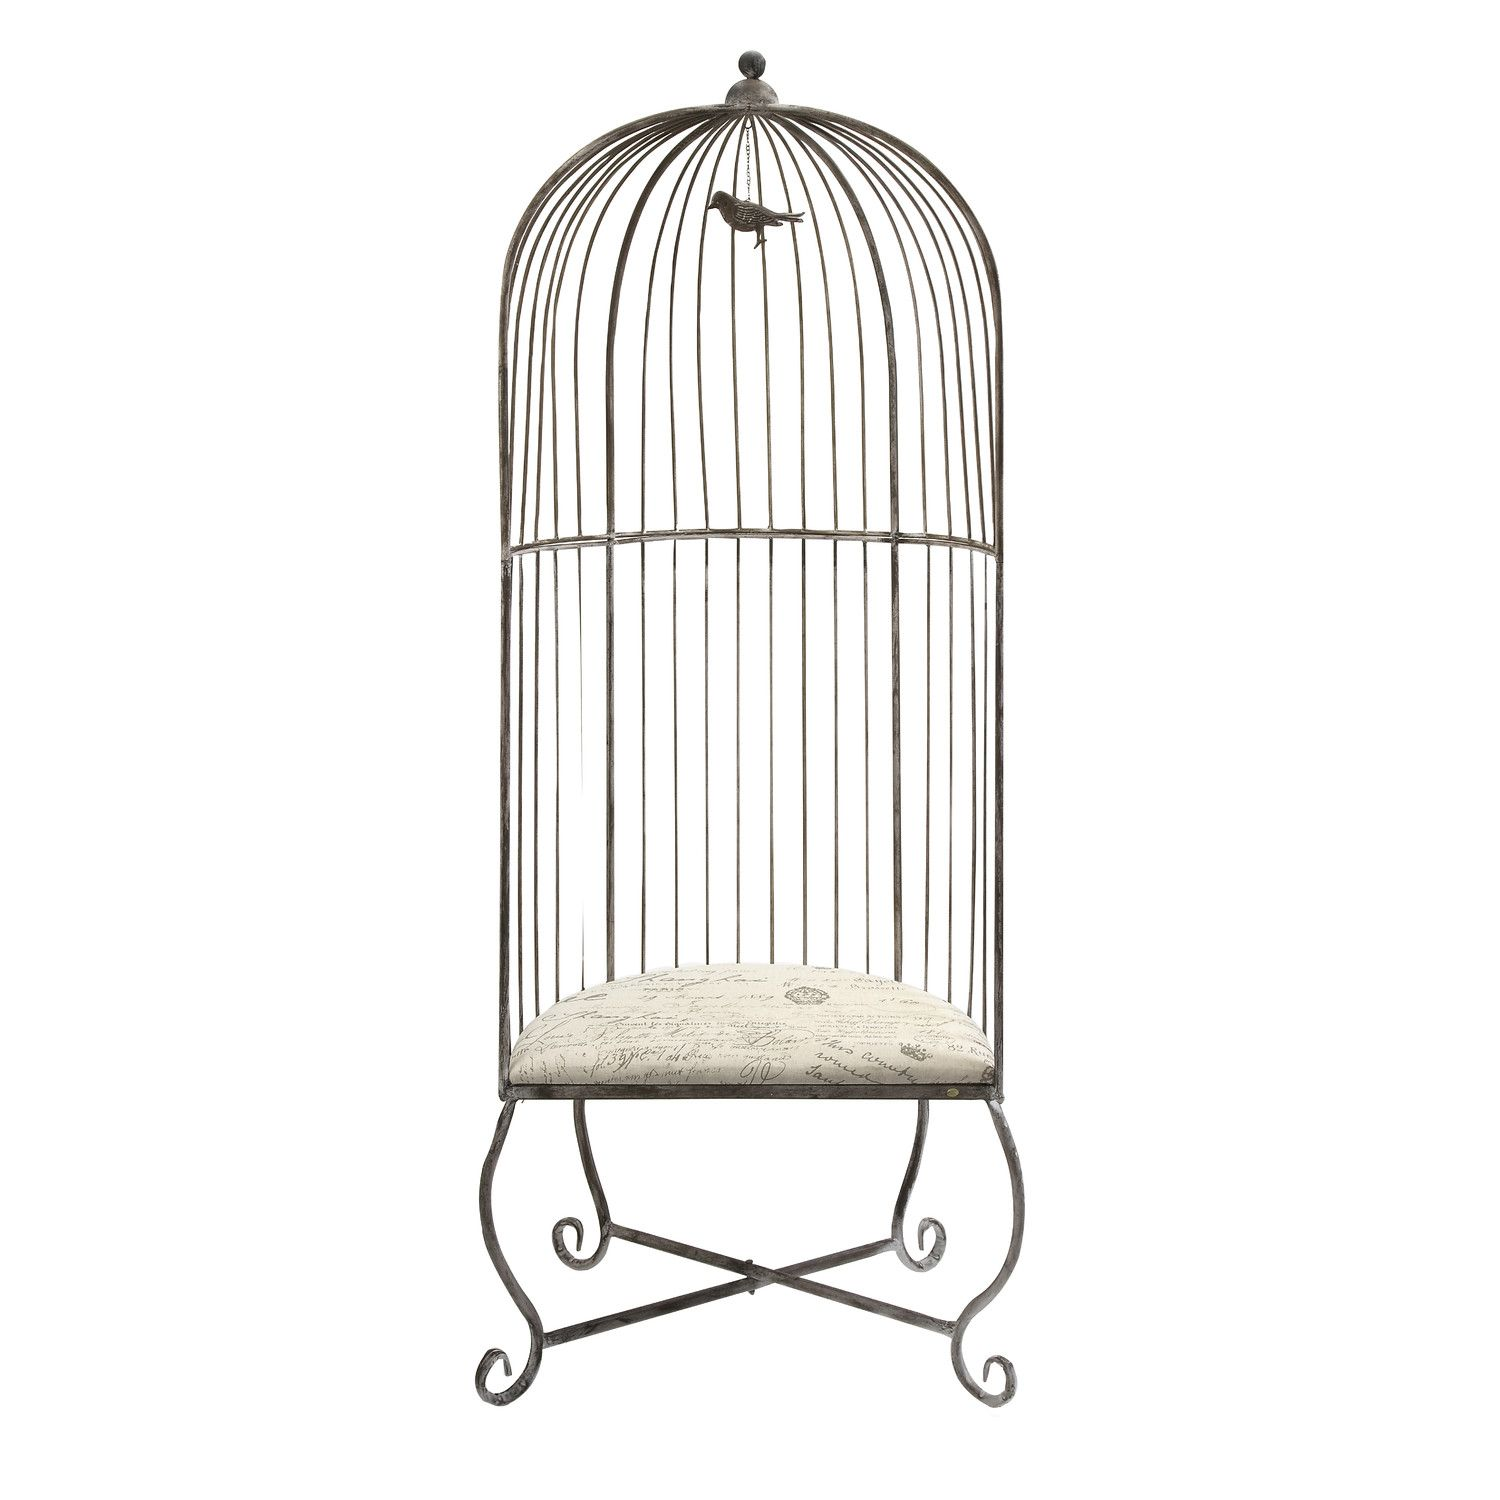 Accent Chair With Cage Bottom: Chair That Looks Like A Half Of The Cage